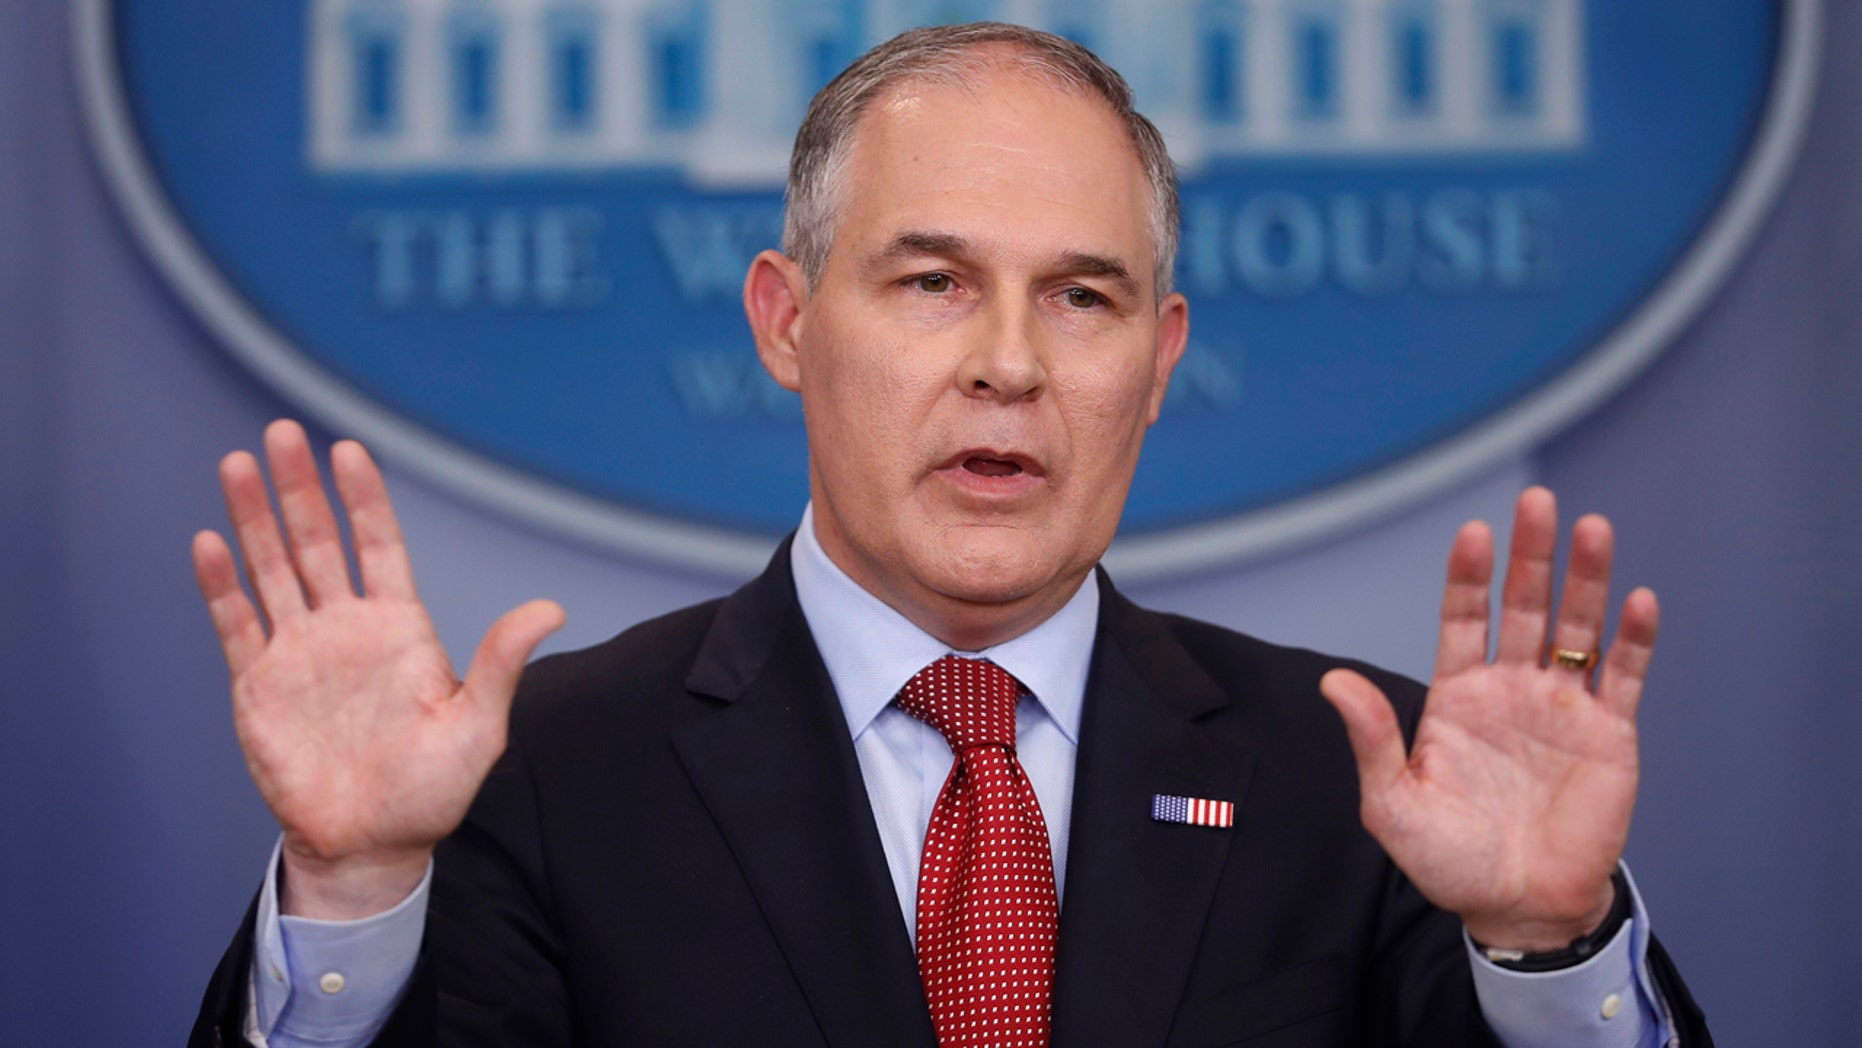 EPA Administrator Scott Pruitt speaks to the media during the daily briefing in the Brady Press Briefing Room of the White House in Washington on June 2, 2017.